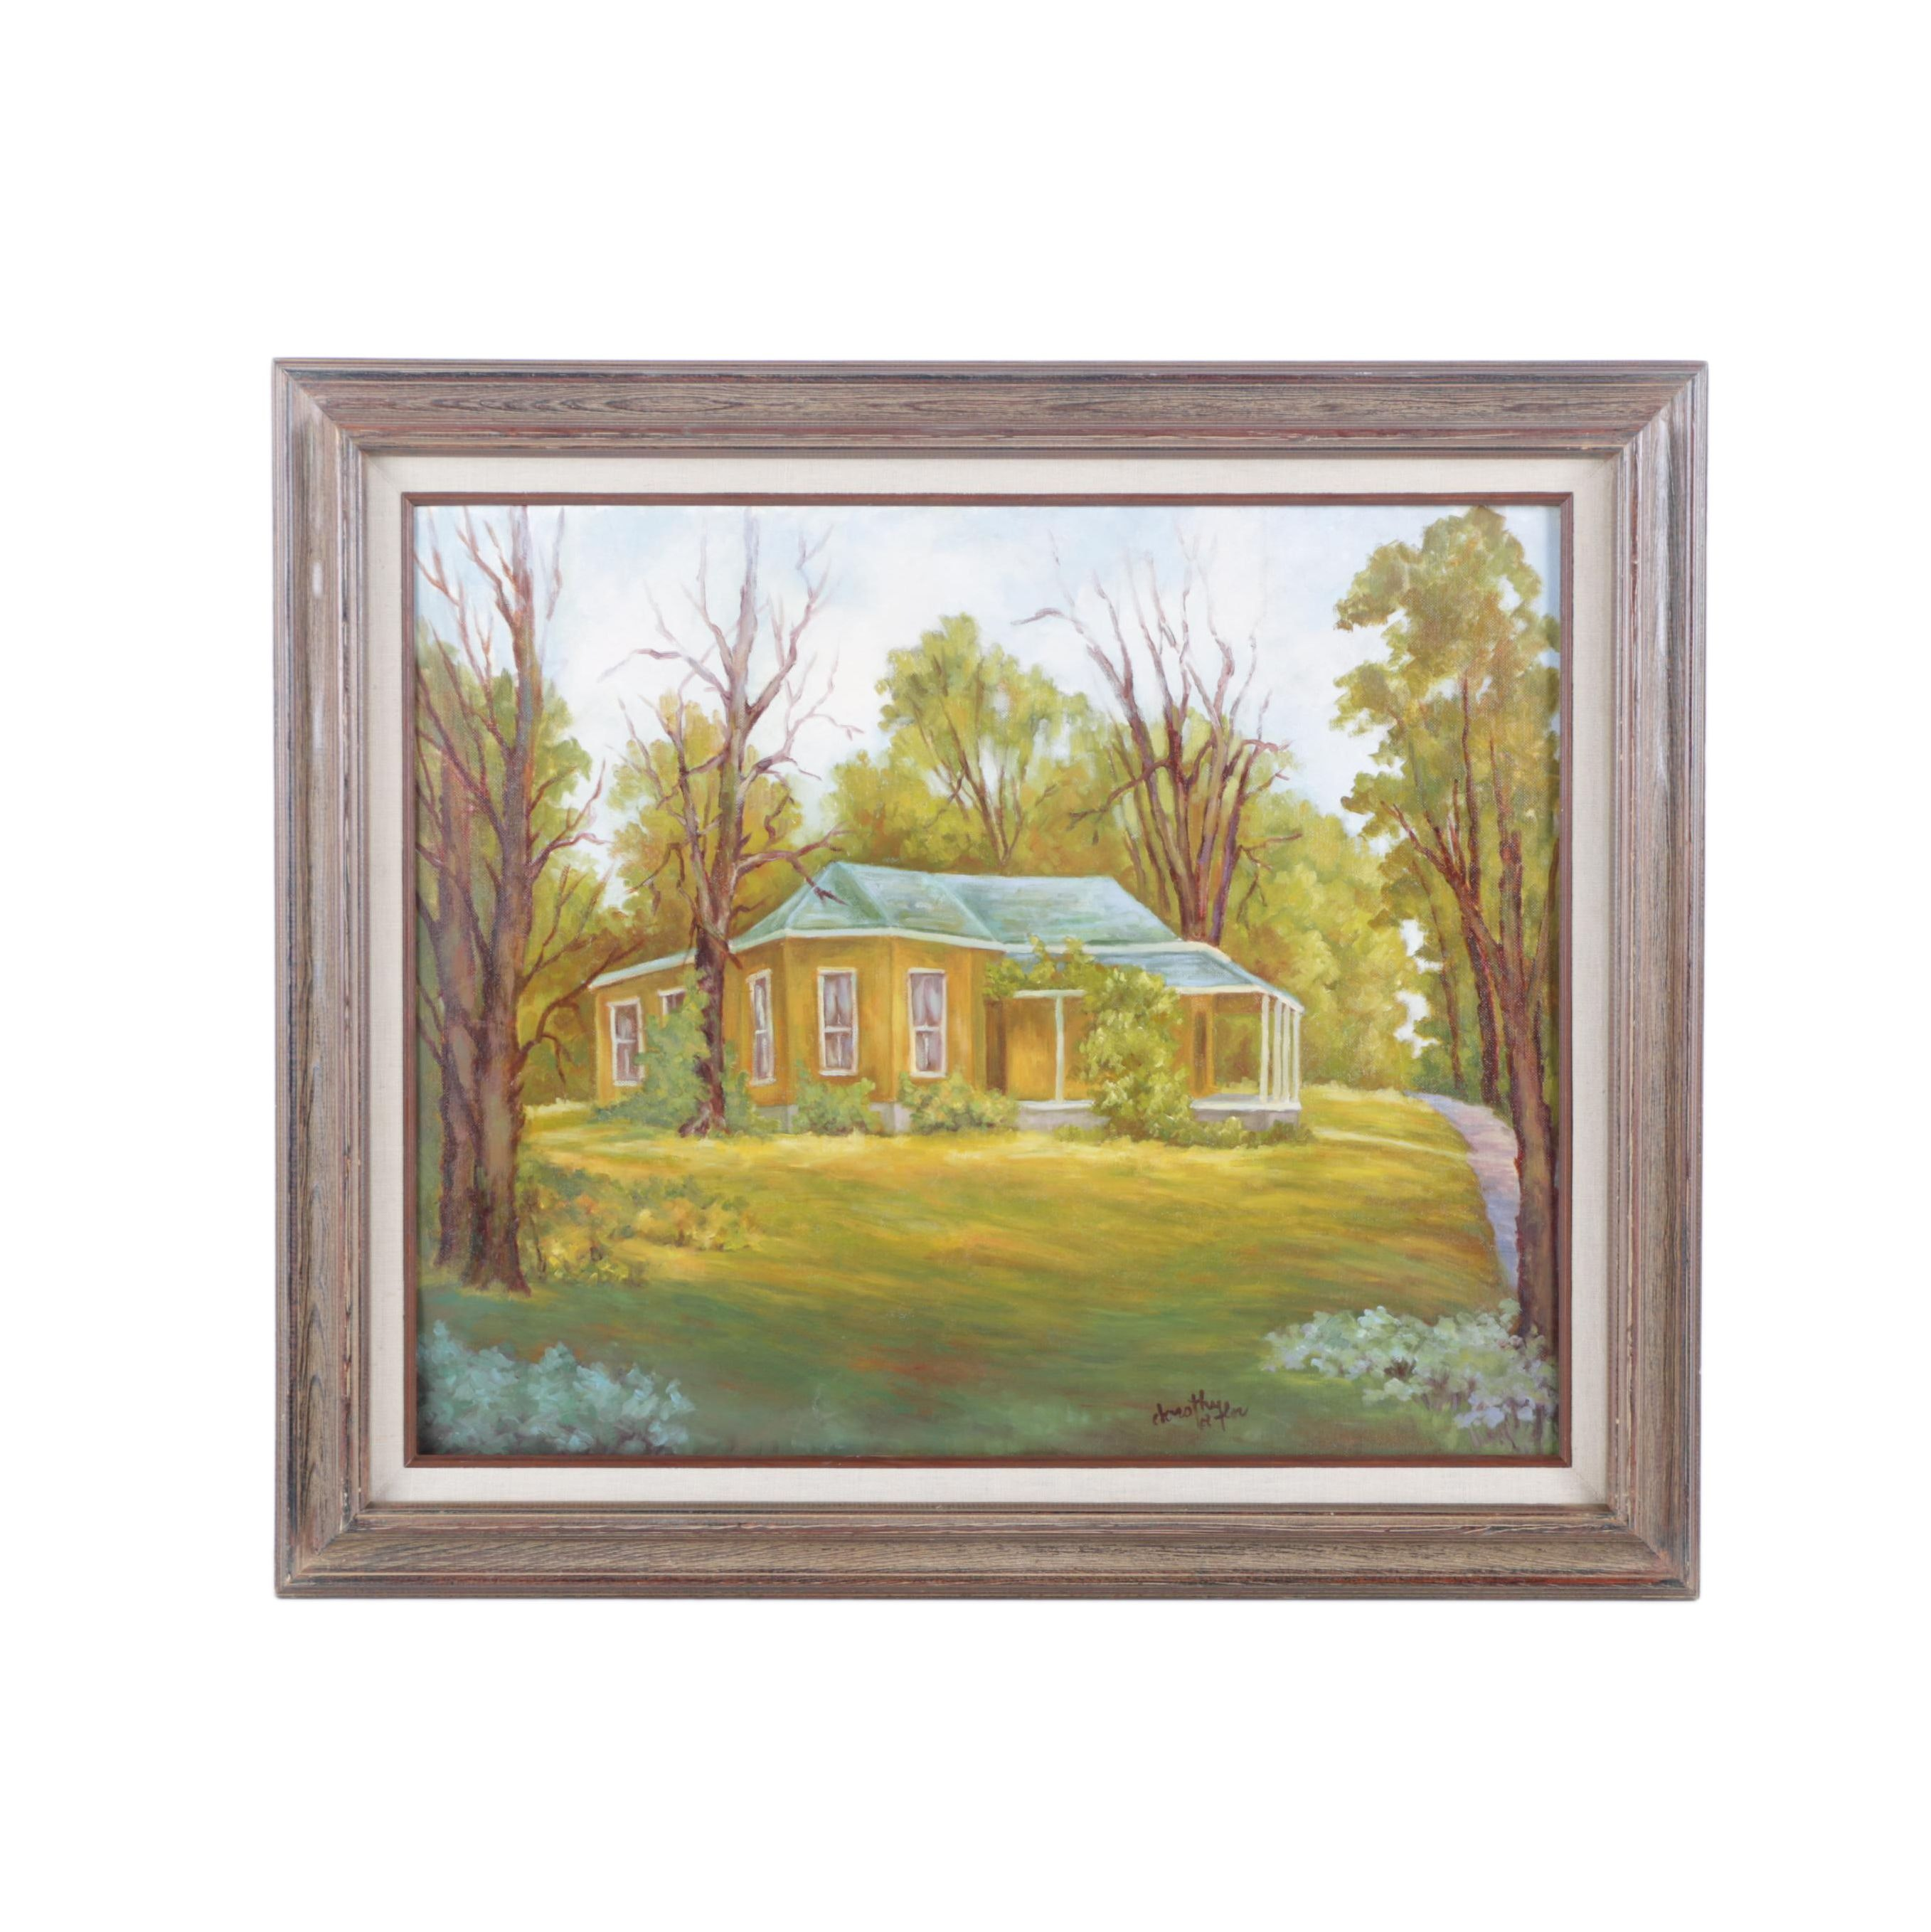 Dorothy Laflor Oil Painting on Canvas Board of House